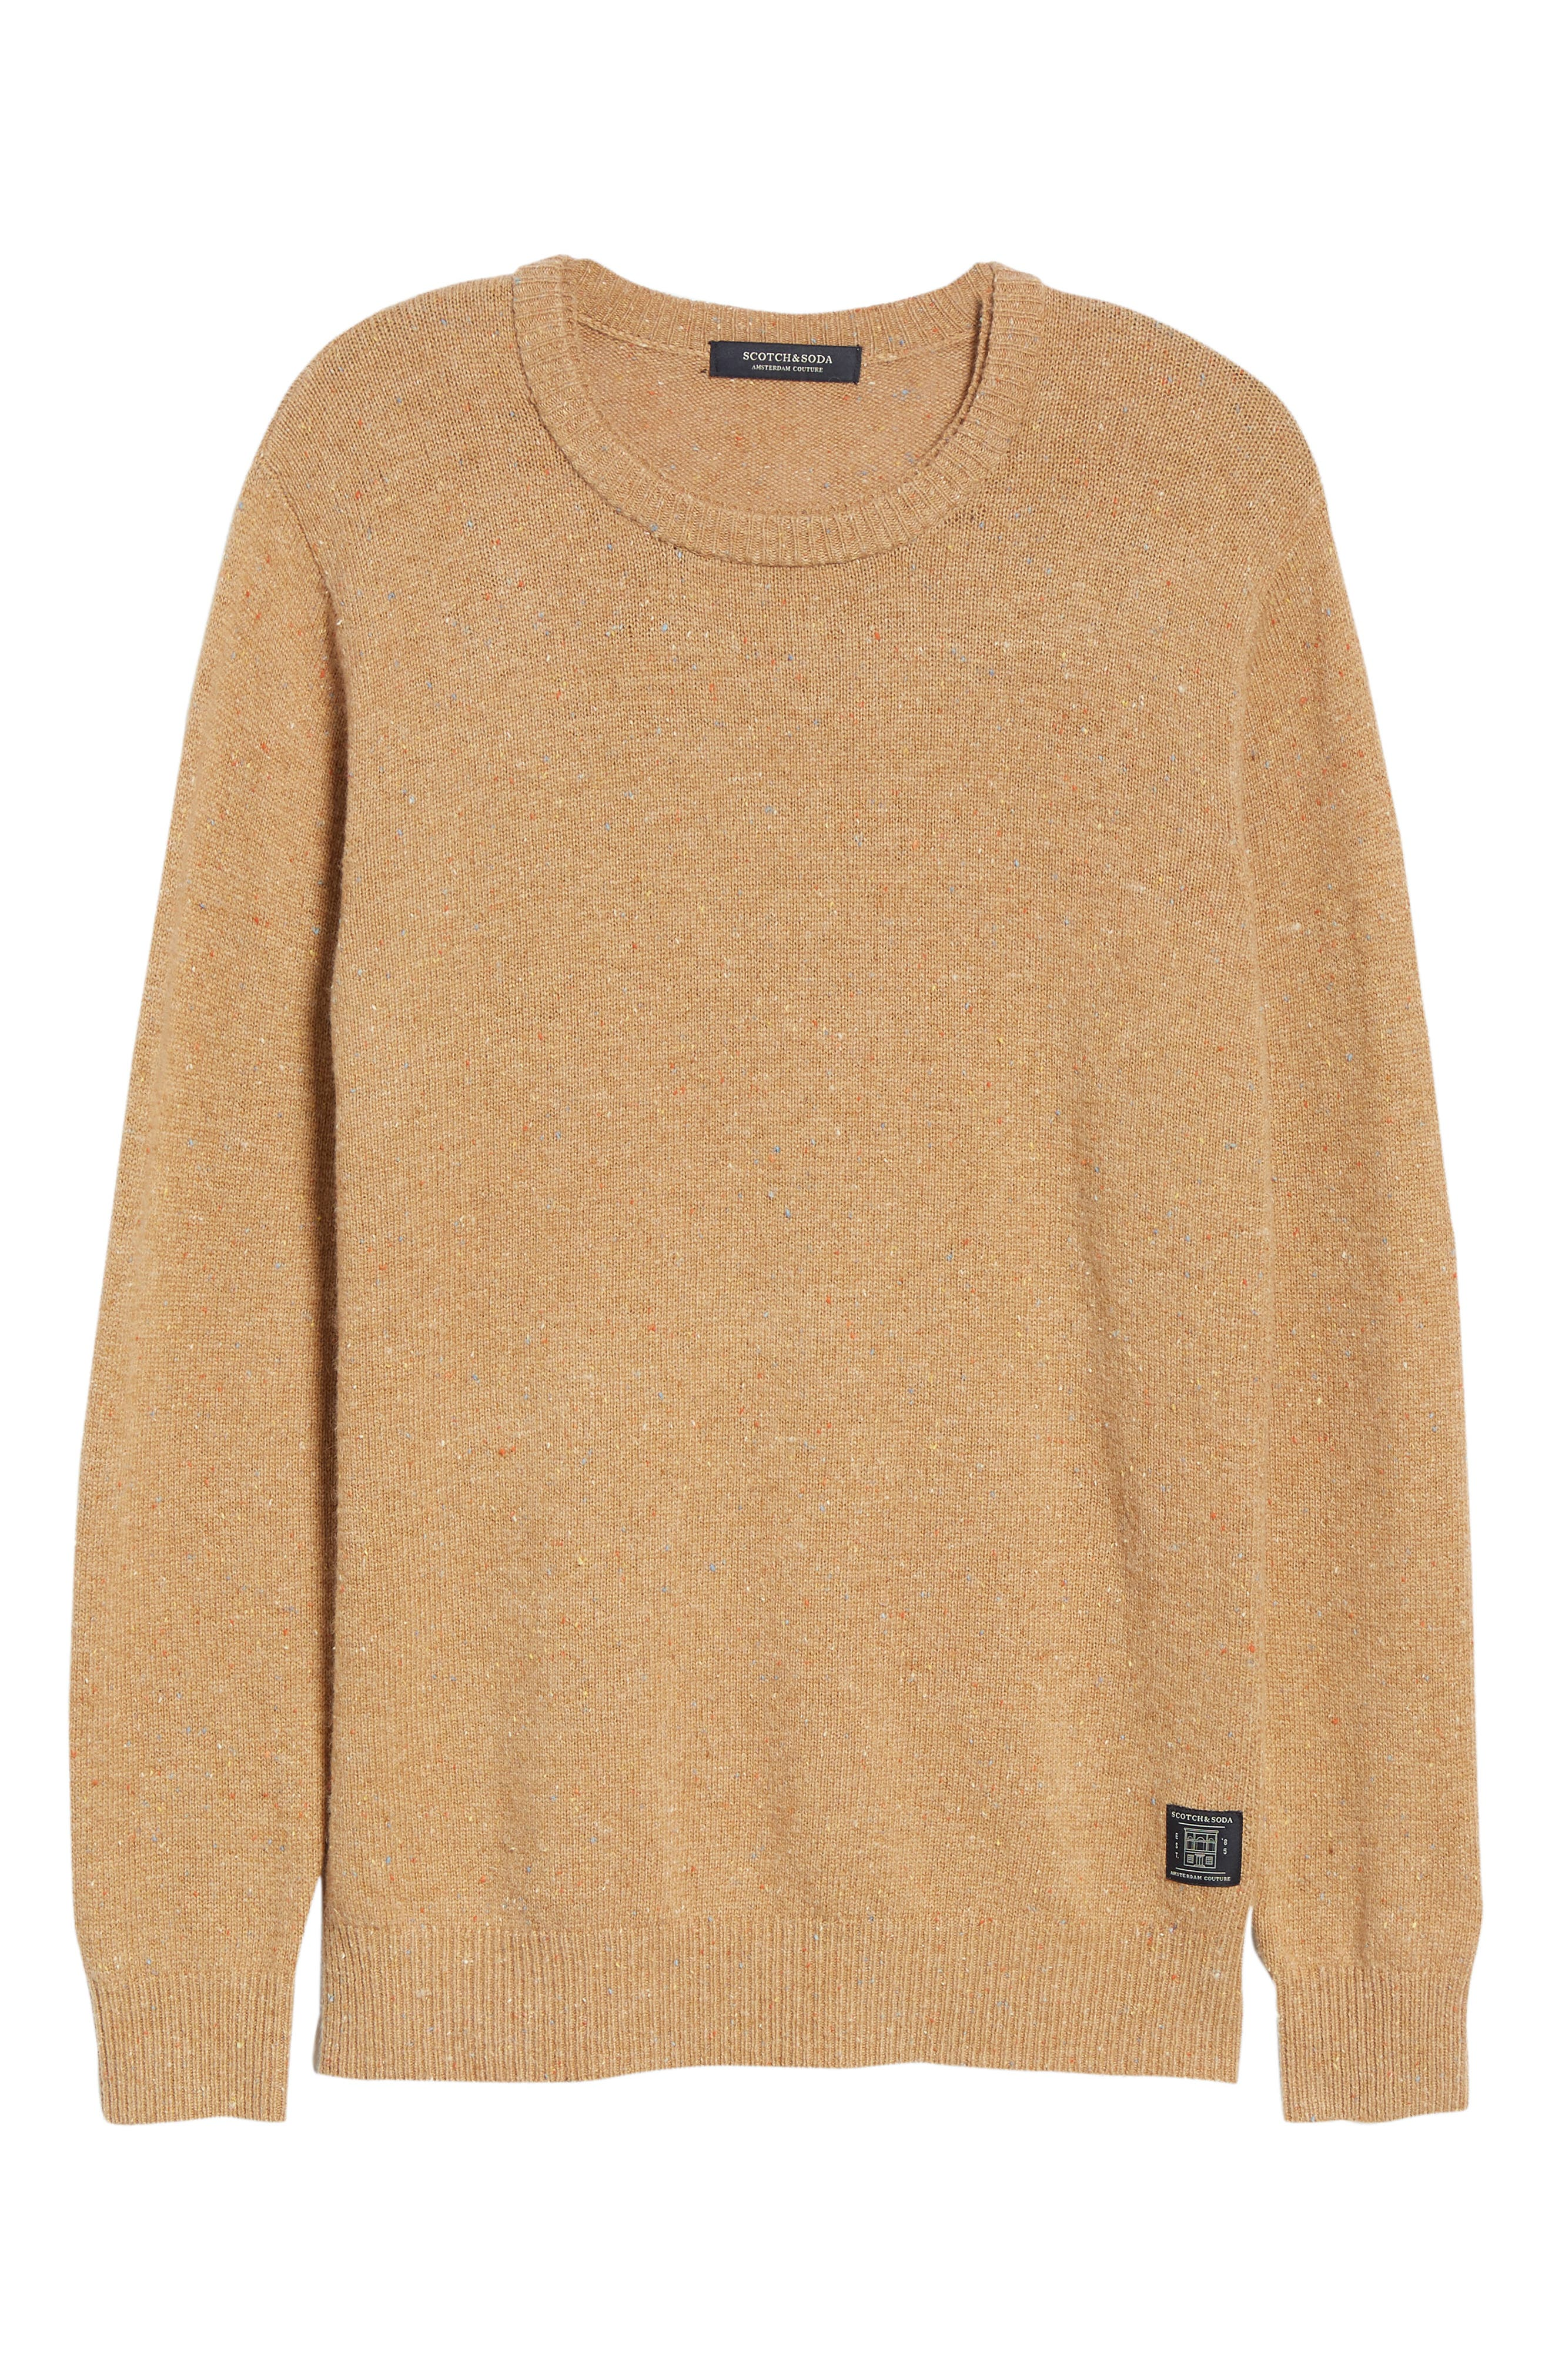 SCOTCH & SODA,                             Nepped Wool Blend Sweater,                             Alternate thumbnail 6, color,                             COMBO E